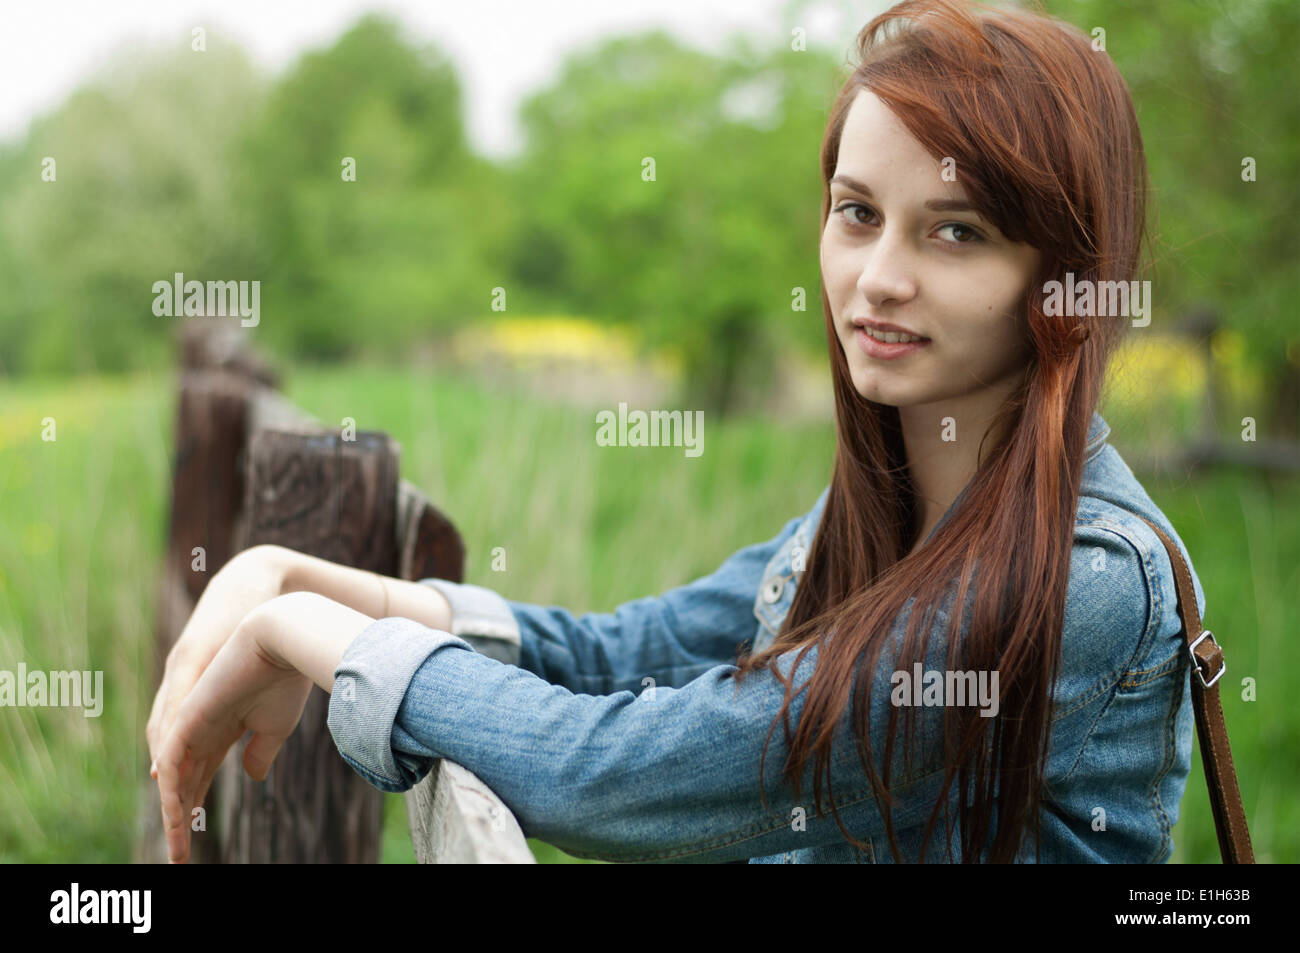 Portrait of young woman leaning on rustic fence - Stock Image